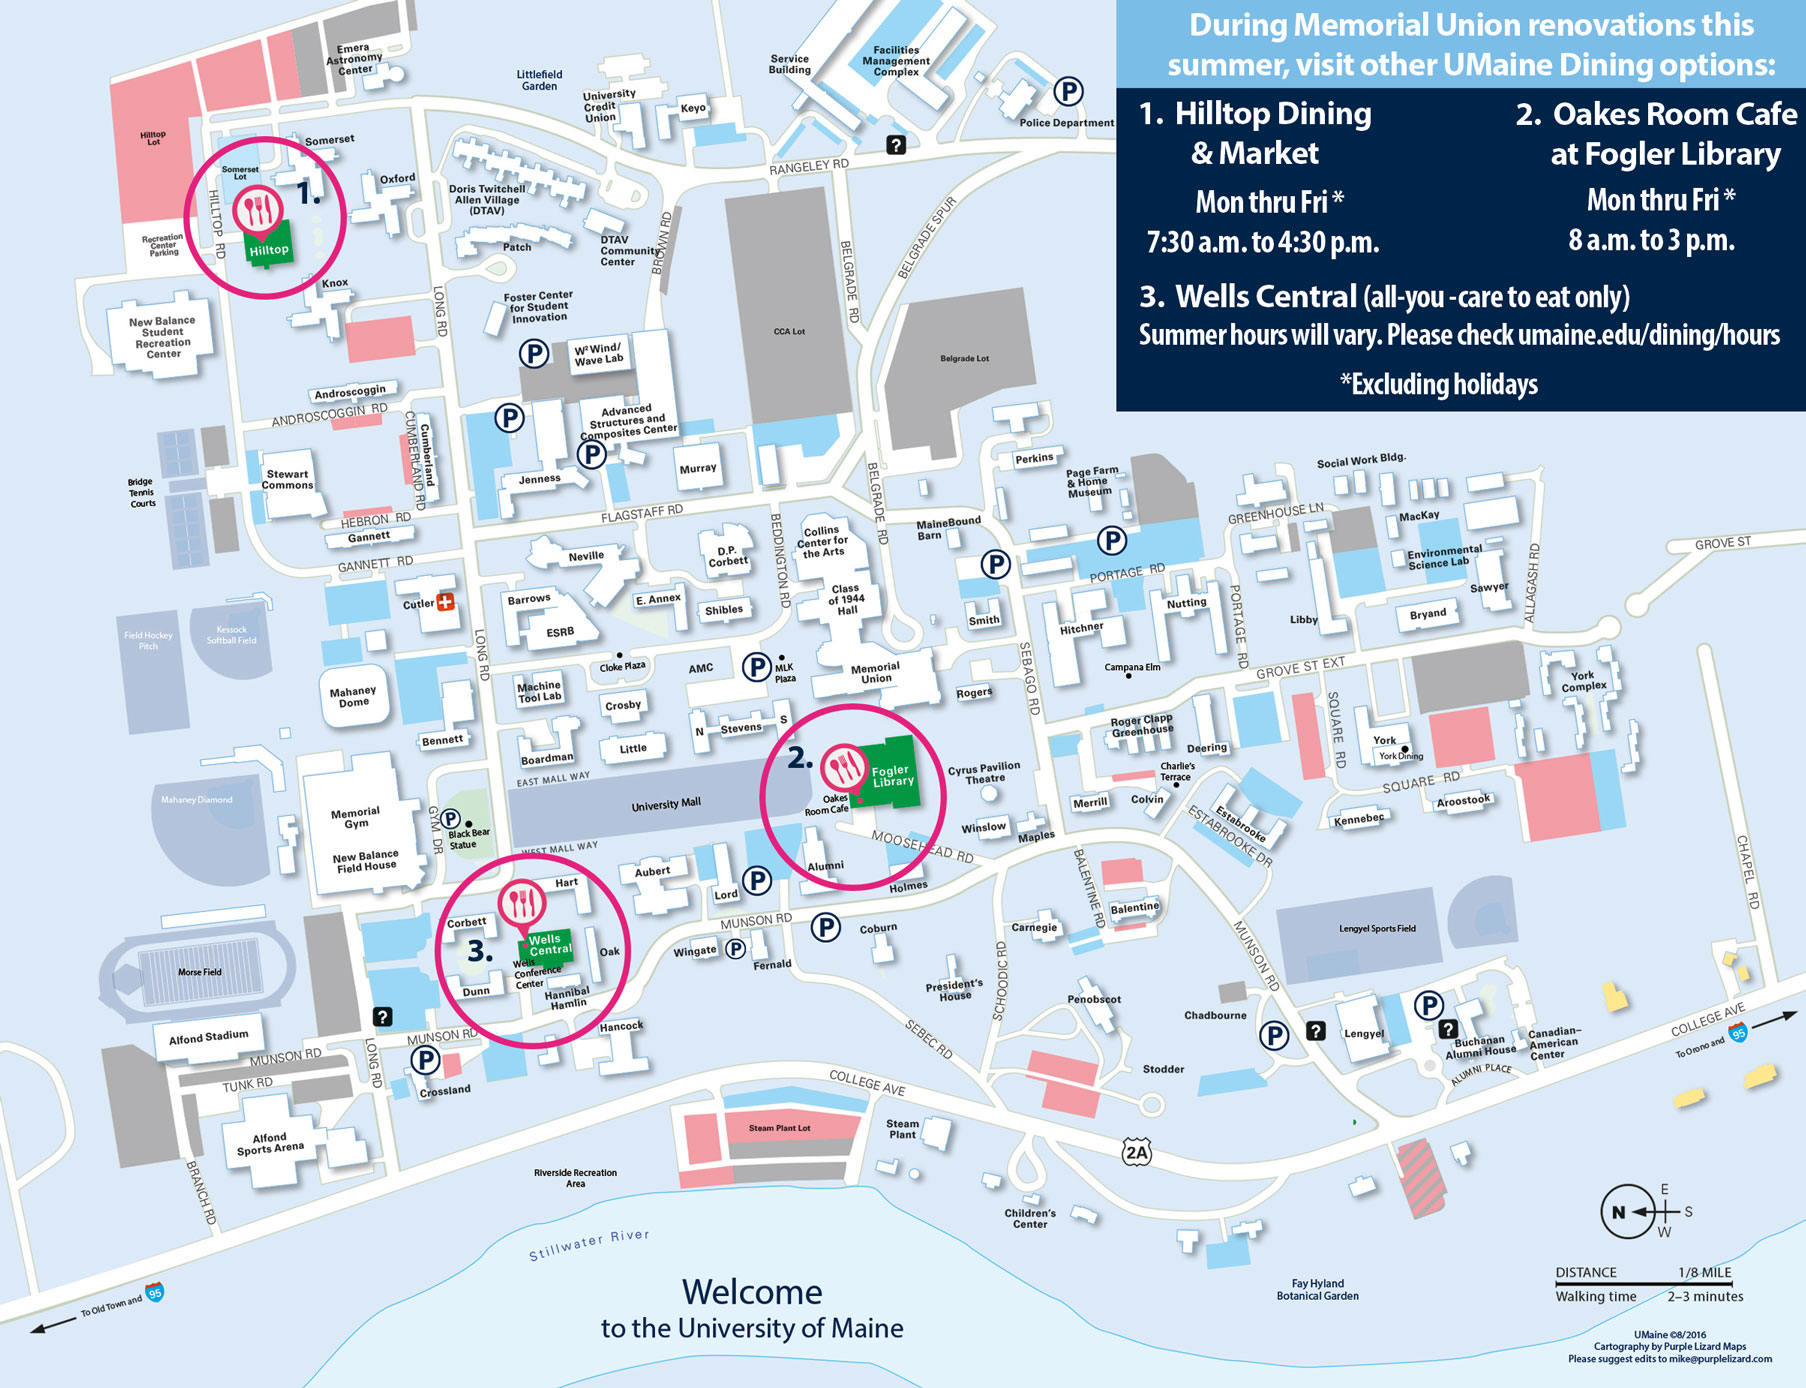 Map of summer dining options during Memorial Union renovation.